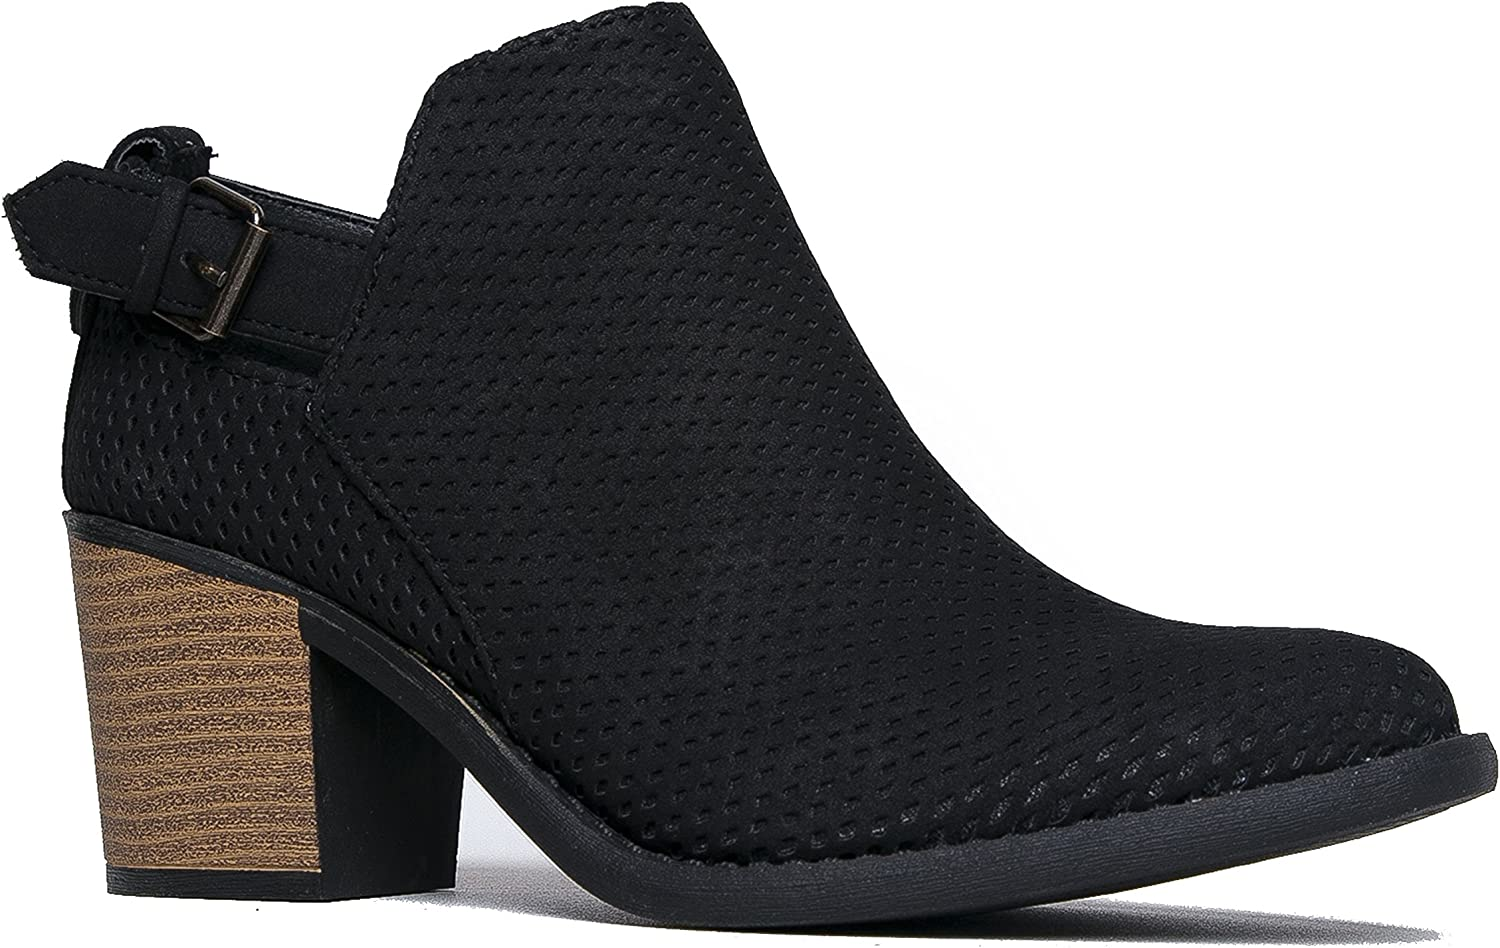 J. Adams Theo Ankle Boot - Perforated Buckle Slip On Stacked High Heel Bootie